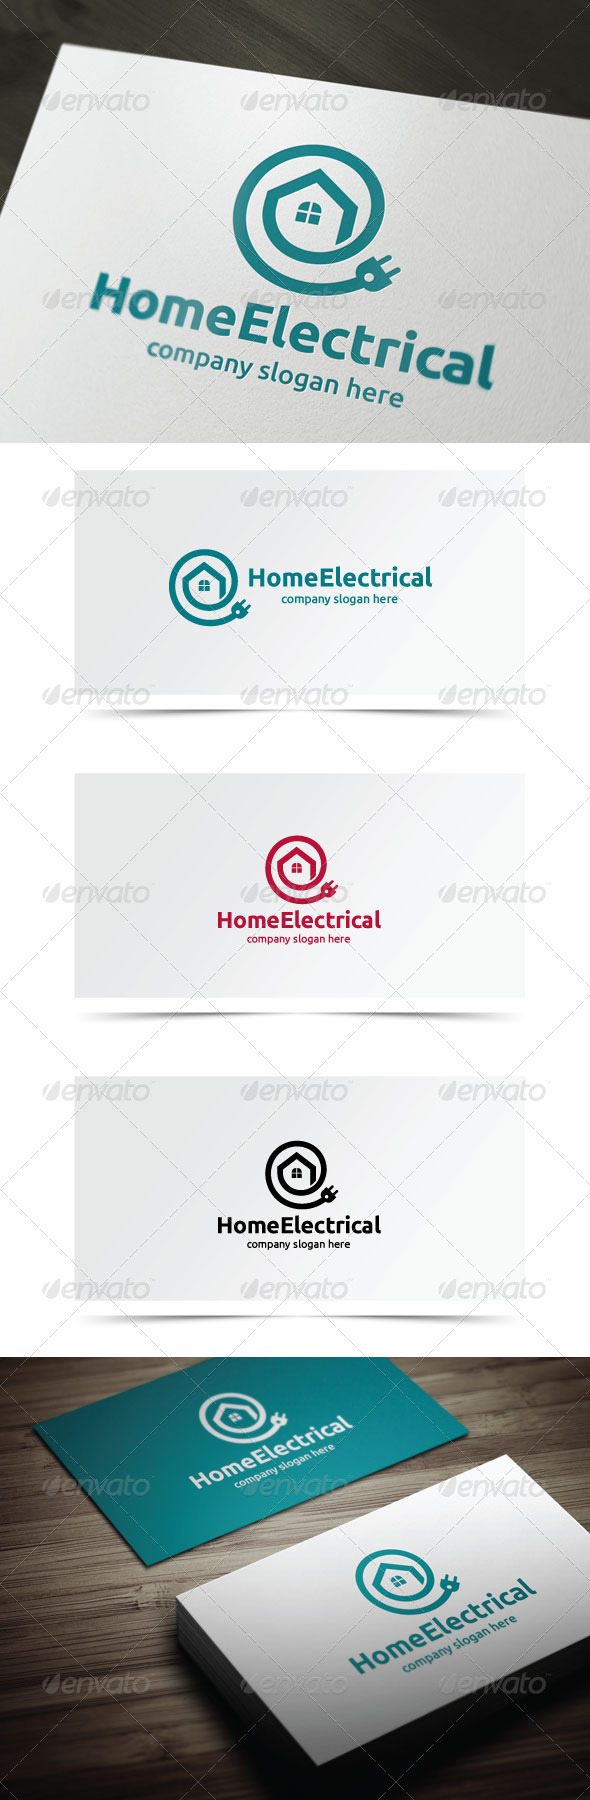 GraphicRiver Home Electrical 7401644